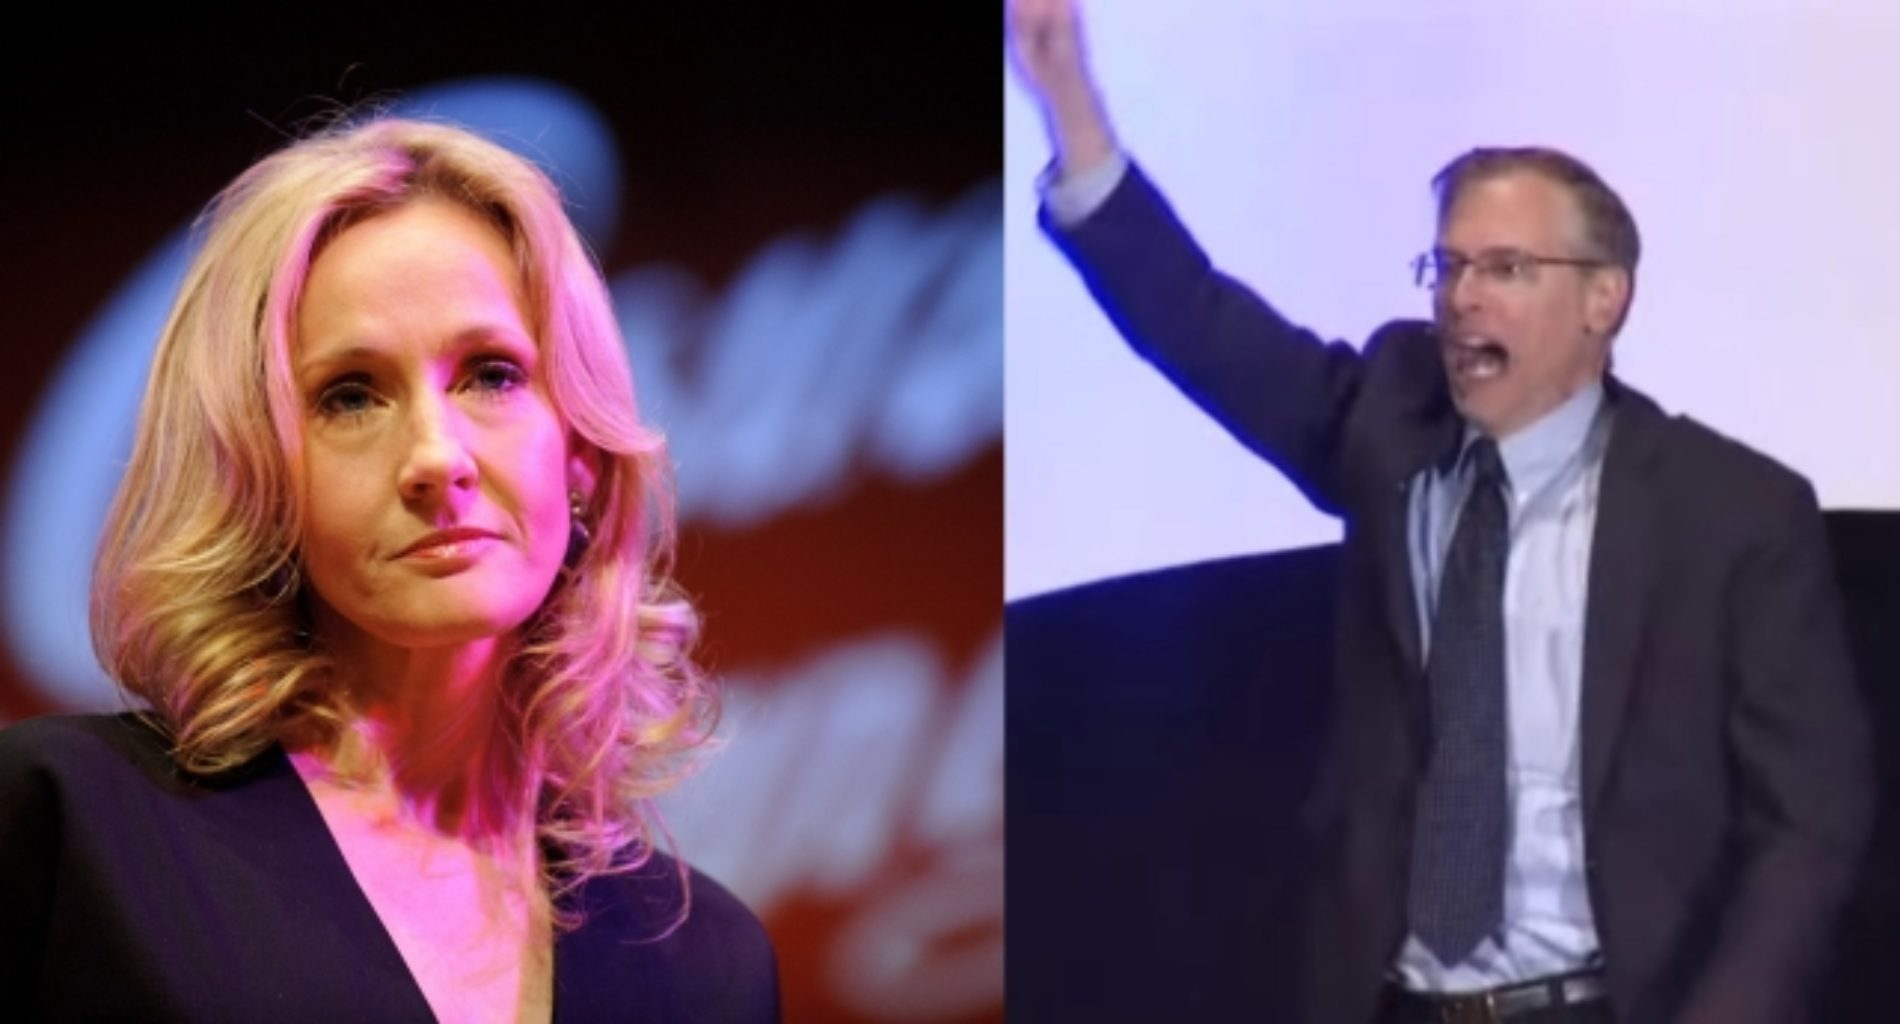 JK Rowling responds to the pastor who thinks Harry Potter is Satanic